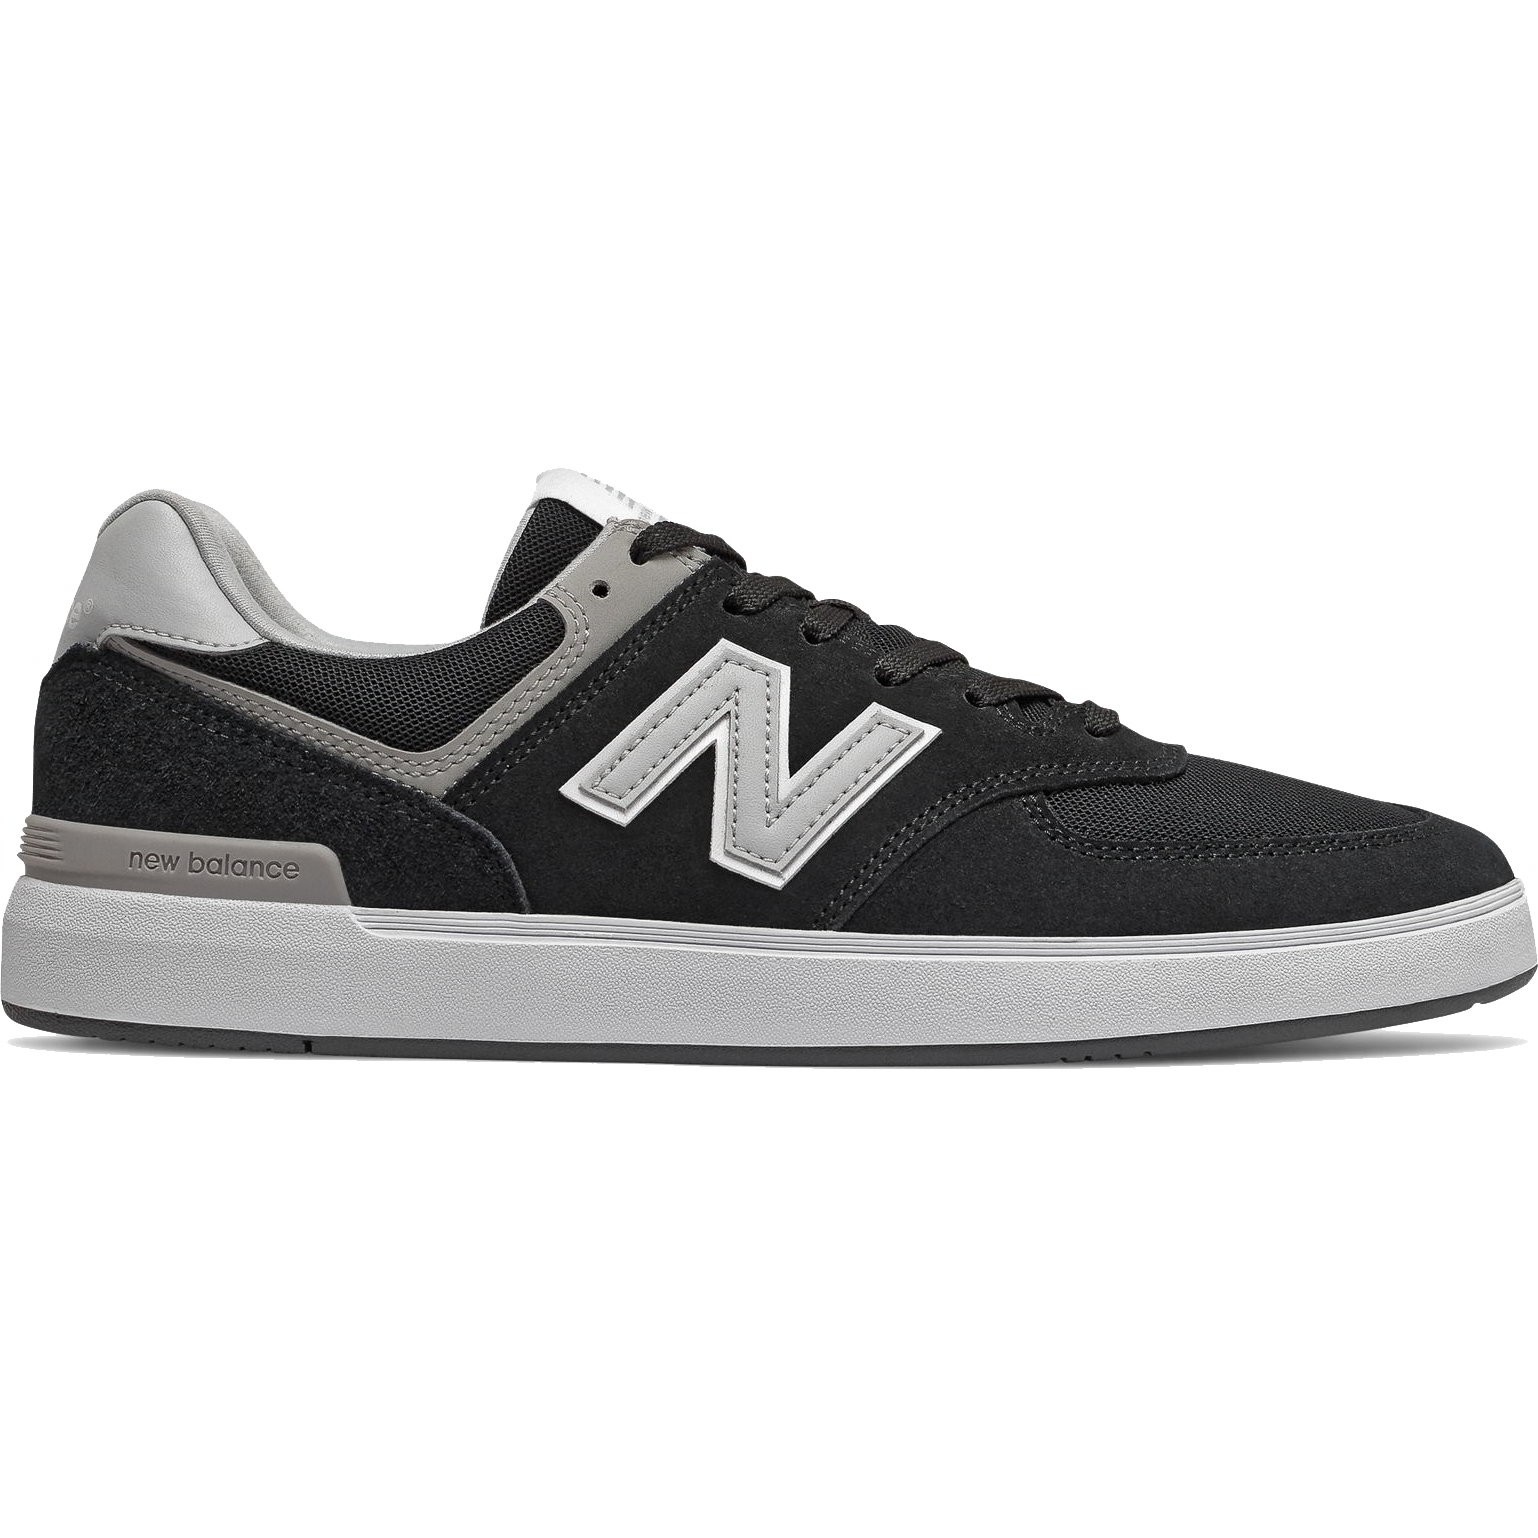 New Balance AM 574 Mens All Coasts Black Skate Trainers Shoes ...